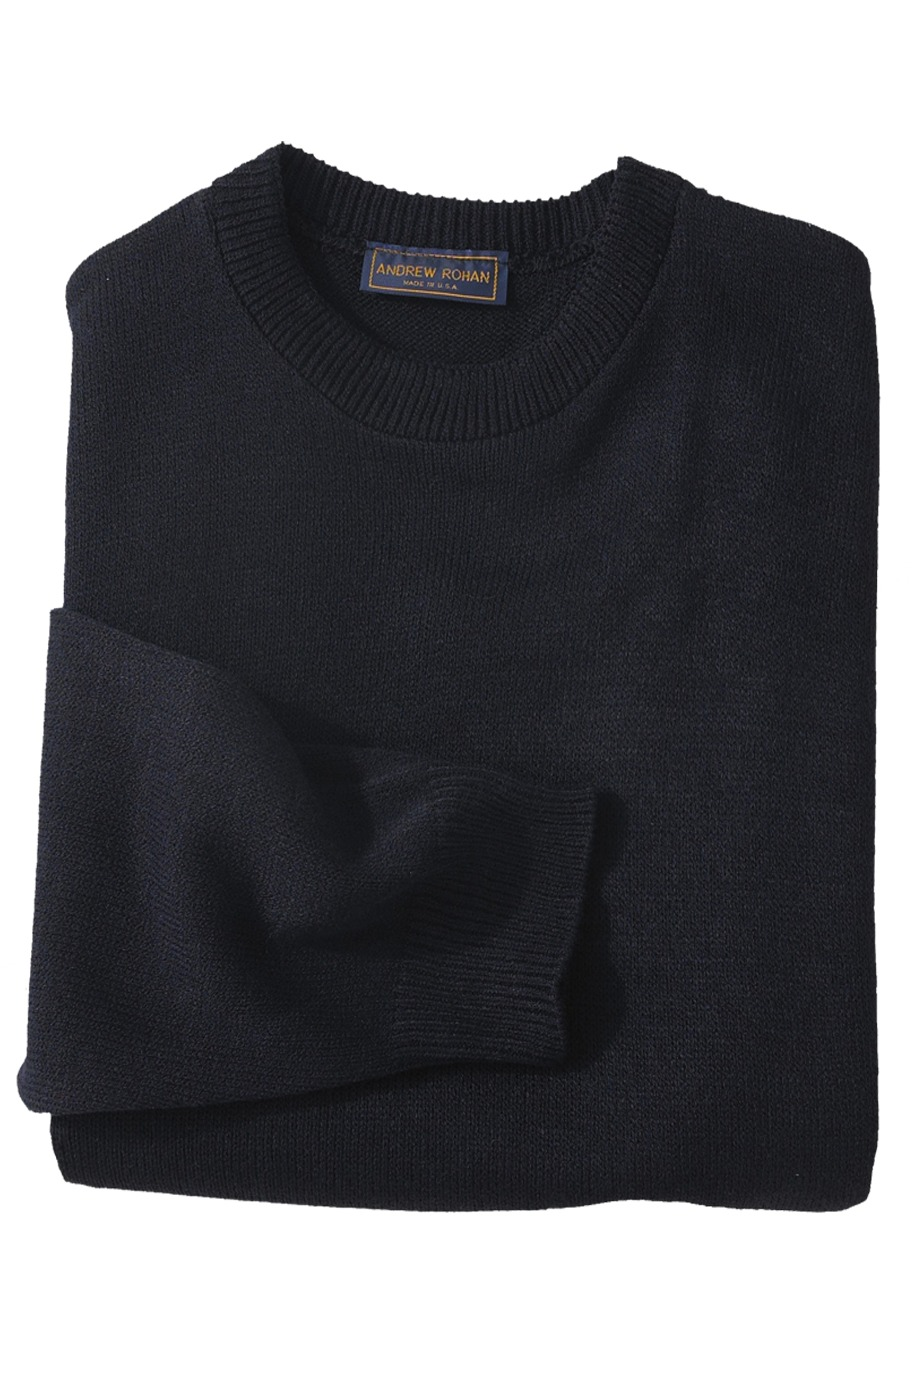 Edwards Garment 665 - Crew Neck Sweater